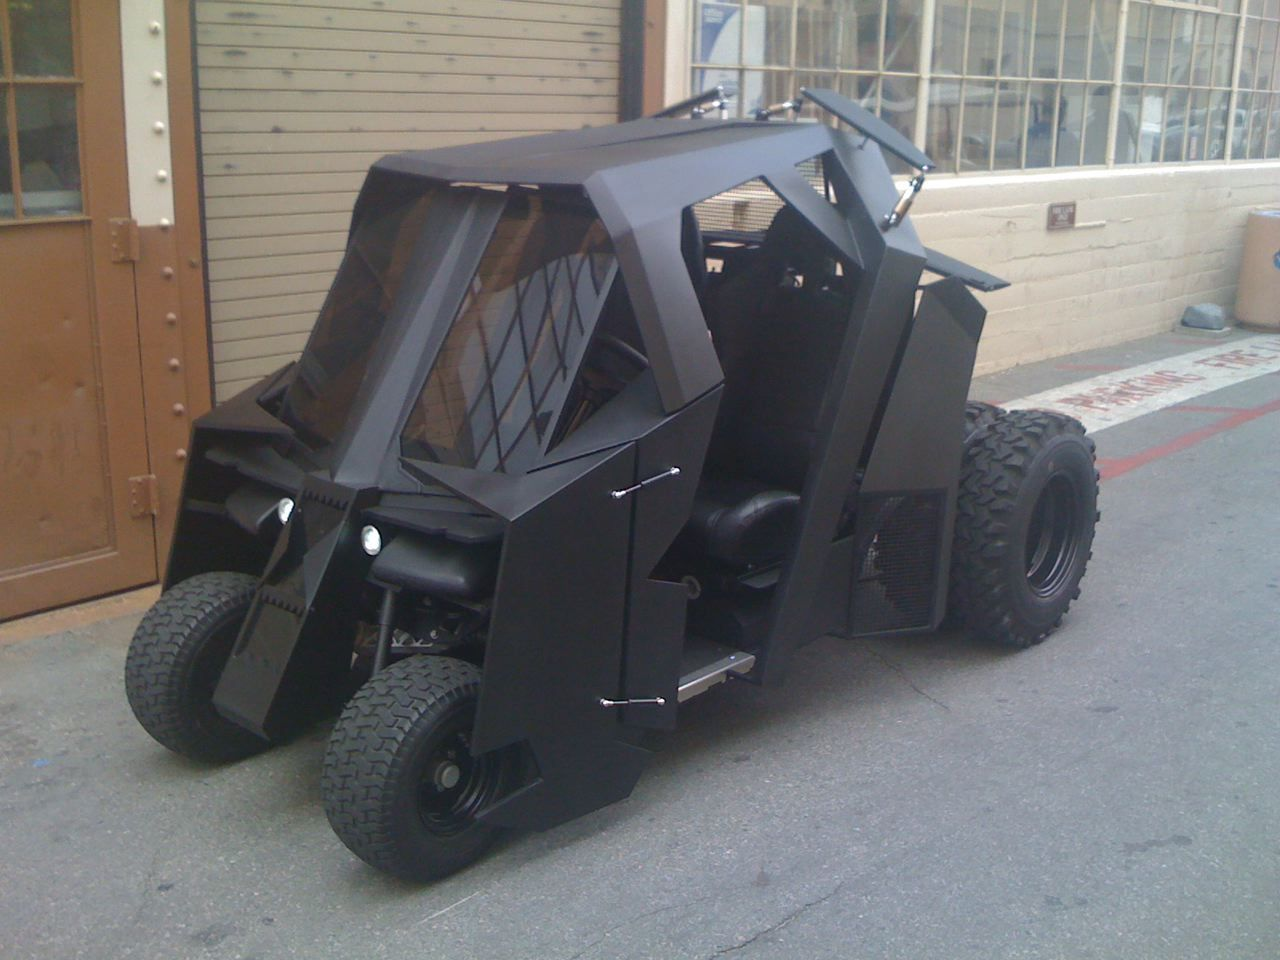 Your Favorite Thing Today: This Batman Tumbler Golf Cart Is Now on eBay...